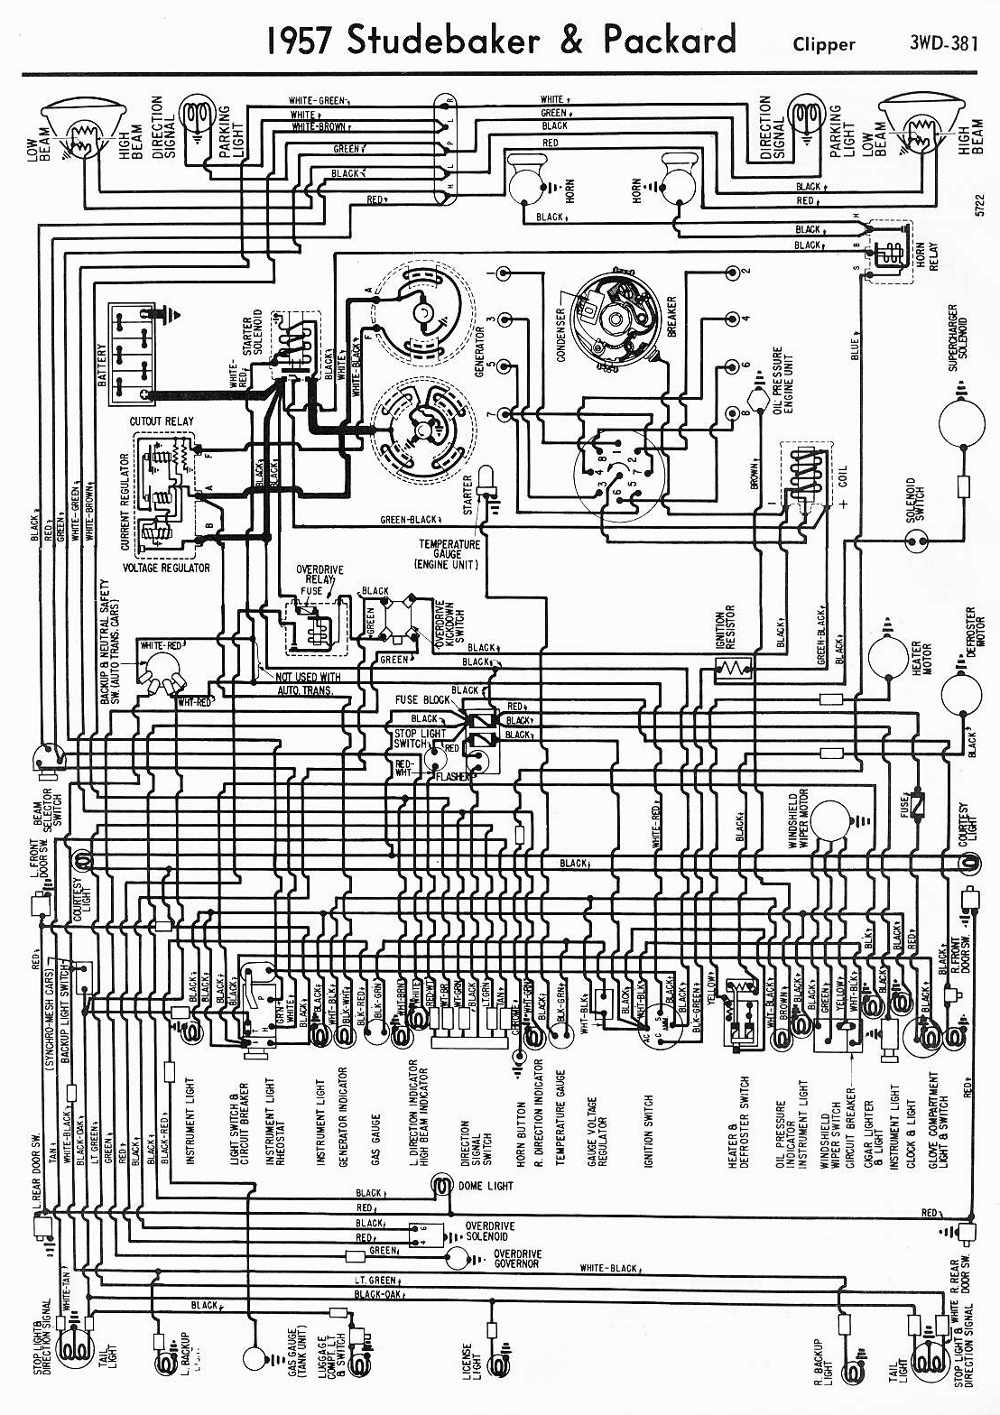 1941 Dodge Wiring Diagram Library In Cars Diagrams 911 1957 Studebaker And Packard Clipper Rh Wiringdiagrams911 Blogspot Com